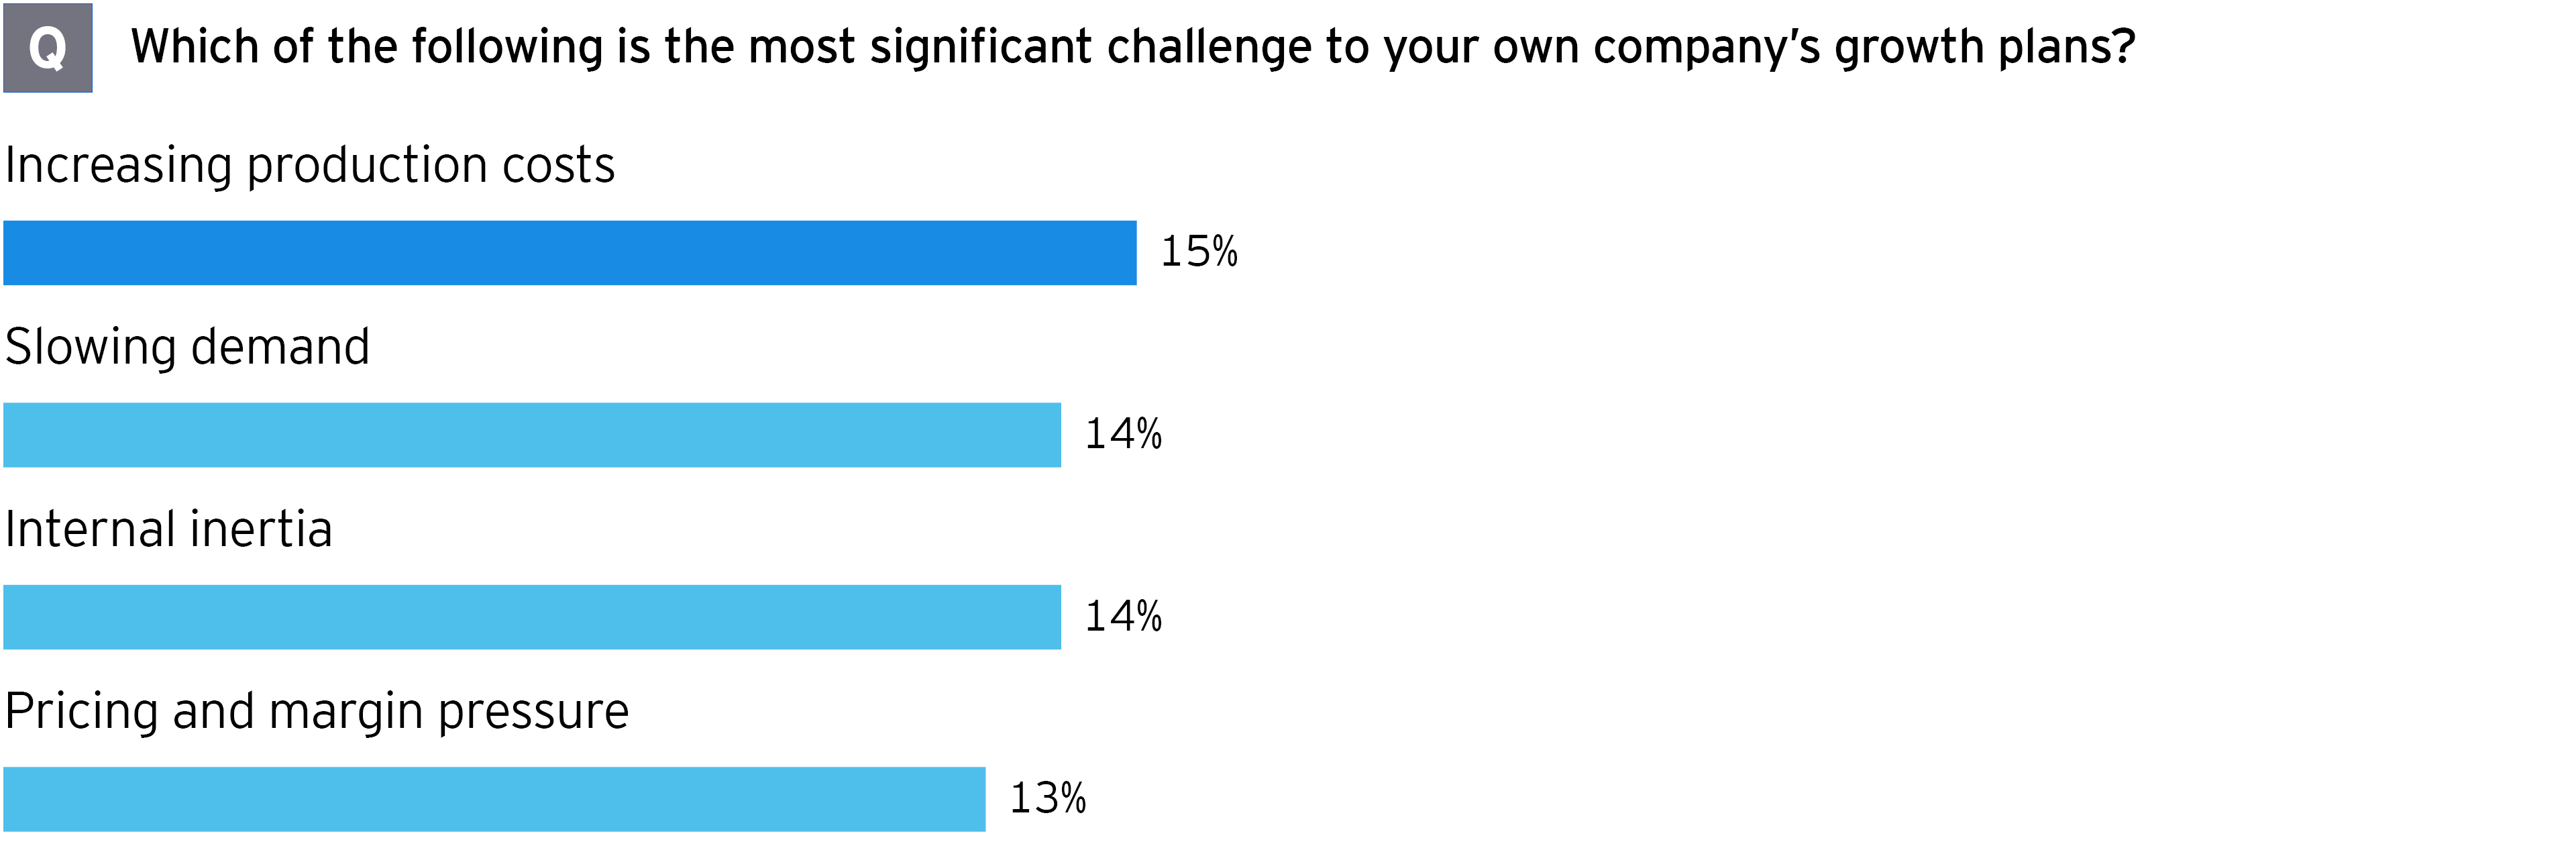 M&A survey mining and metals most significant challenge